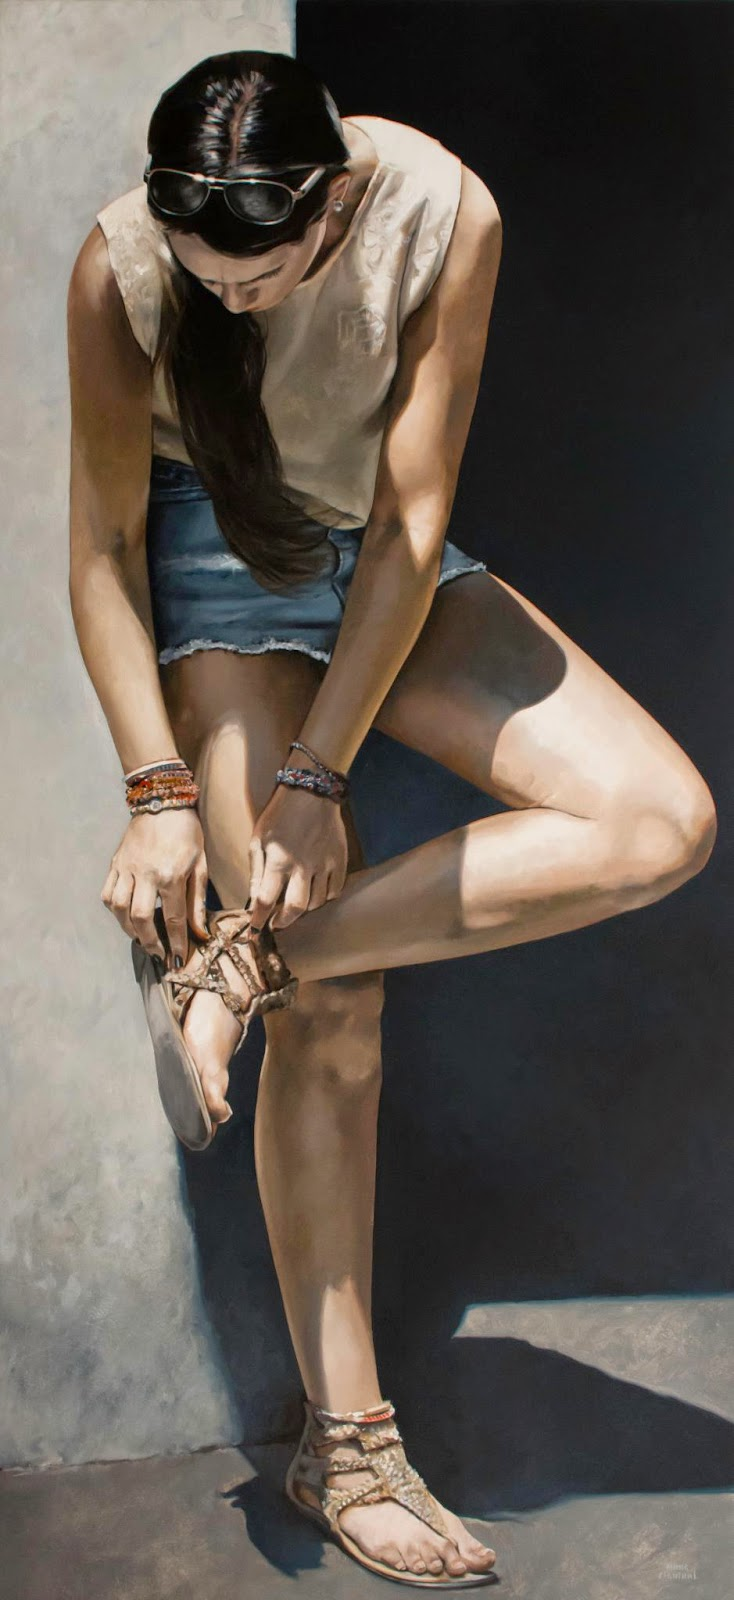 Hyper Realistic Girls Figure Painting By Marc Figueras (22)